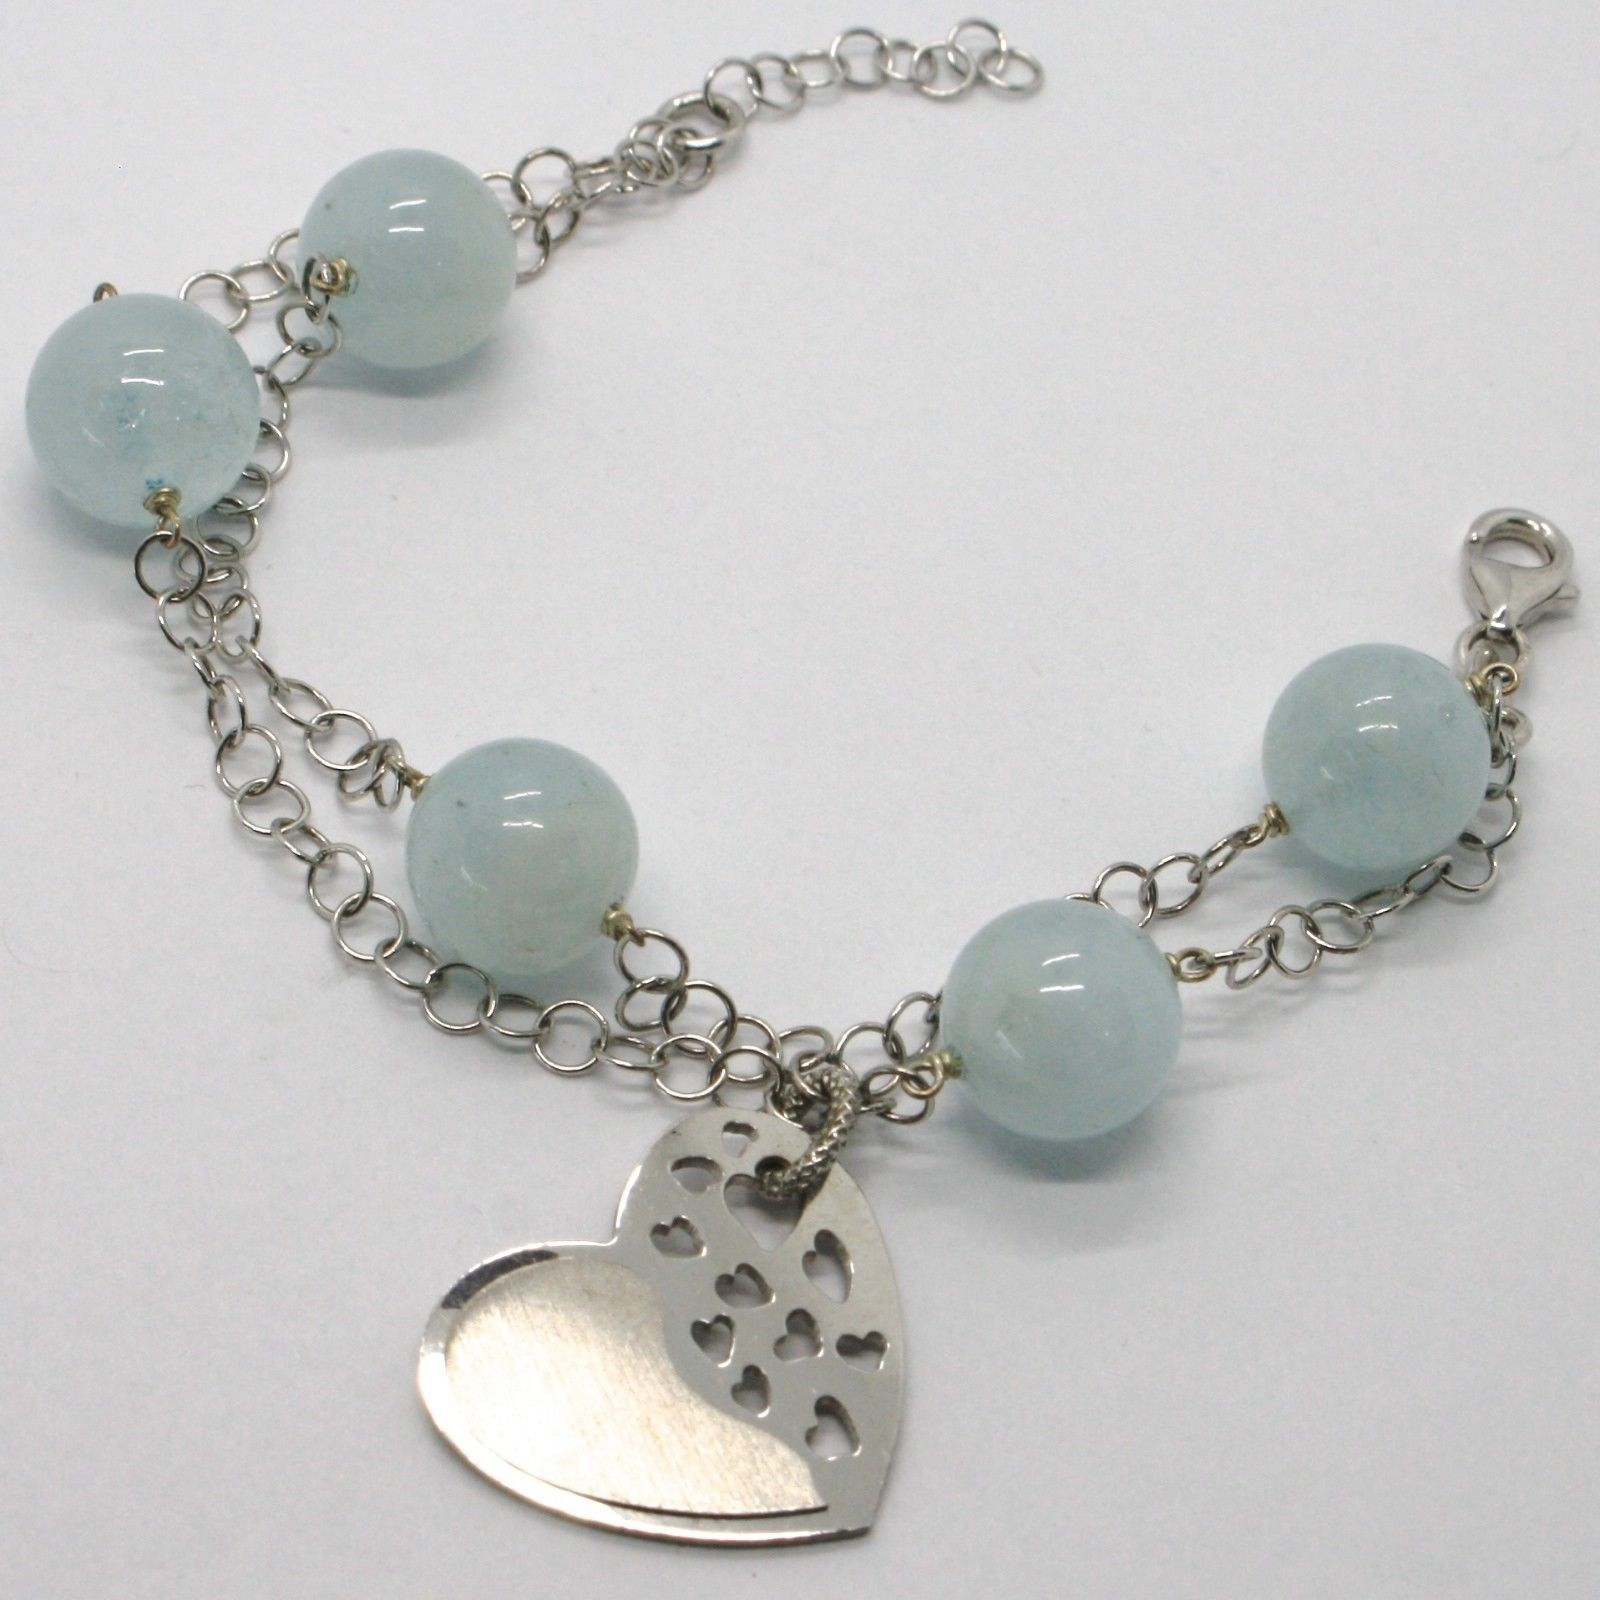 925 STERLING SILVER BRACELET BIG AQUAMARINE 12 MM BALLS & SATIN HEART PENDANT